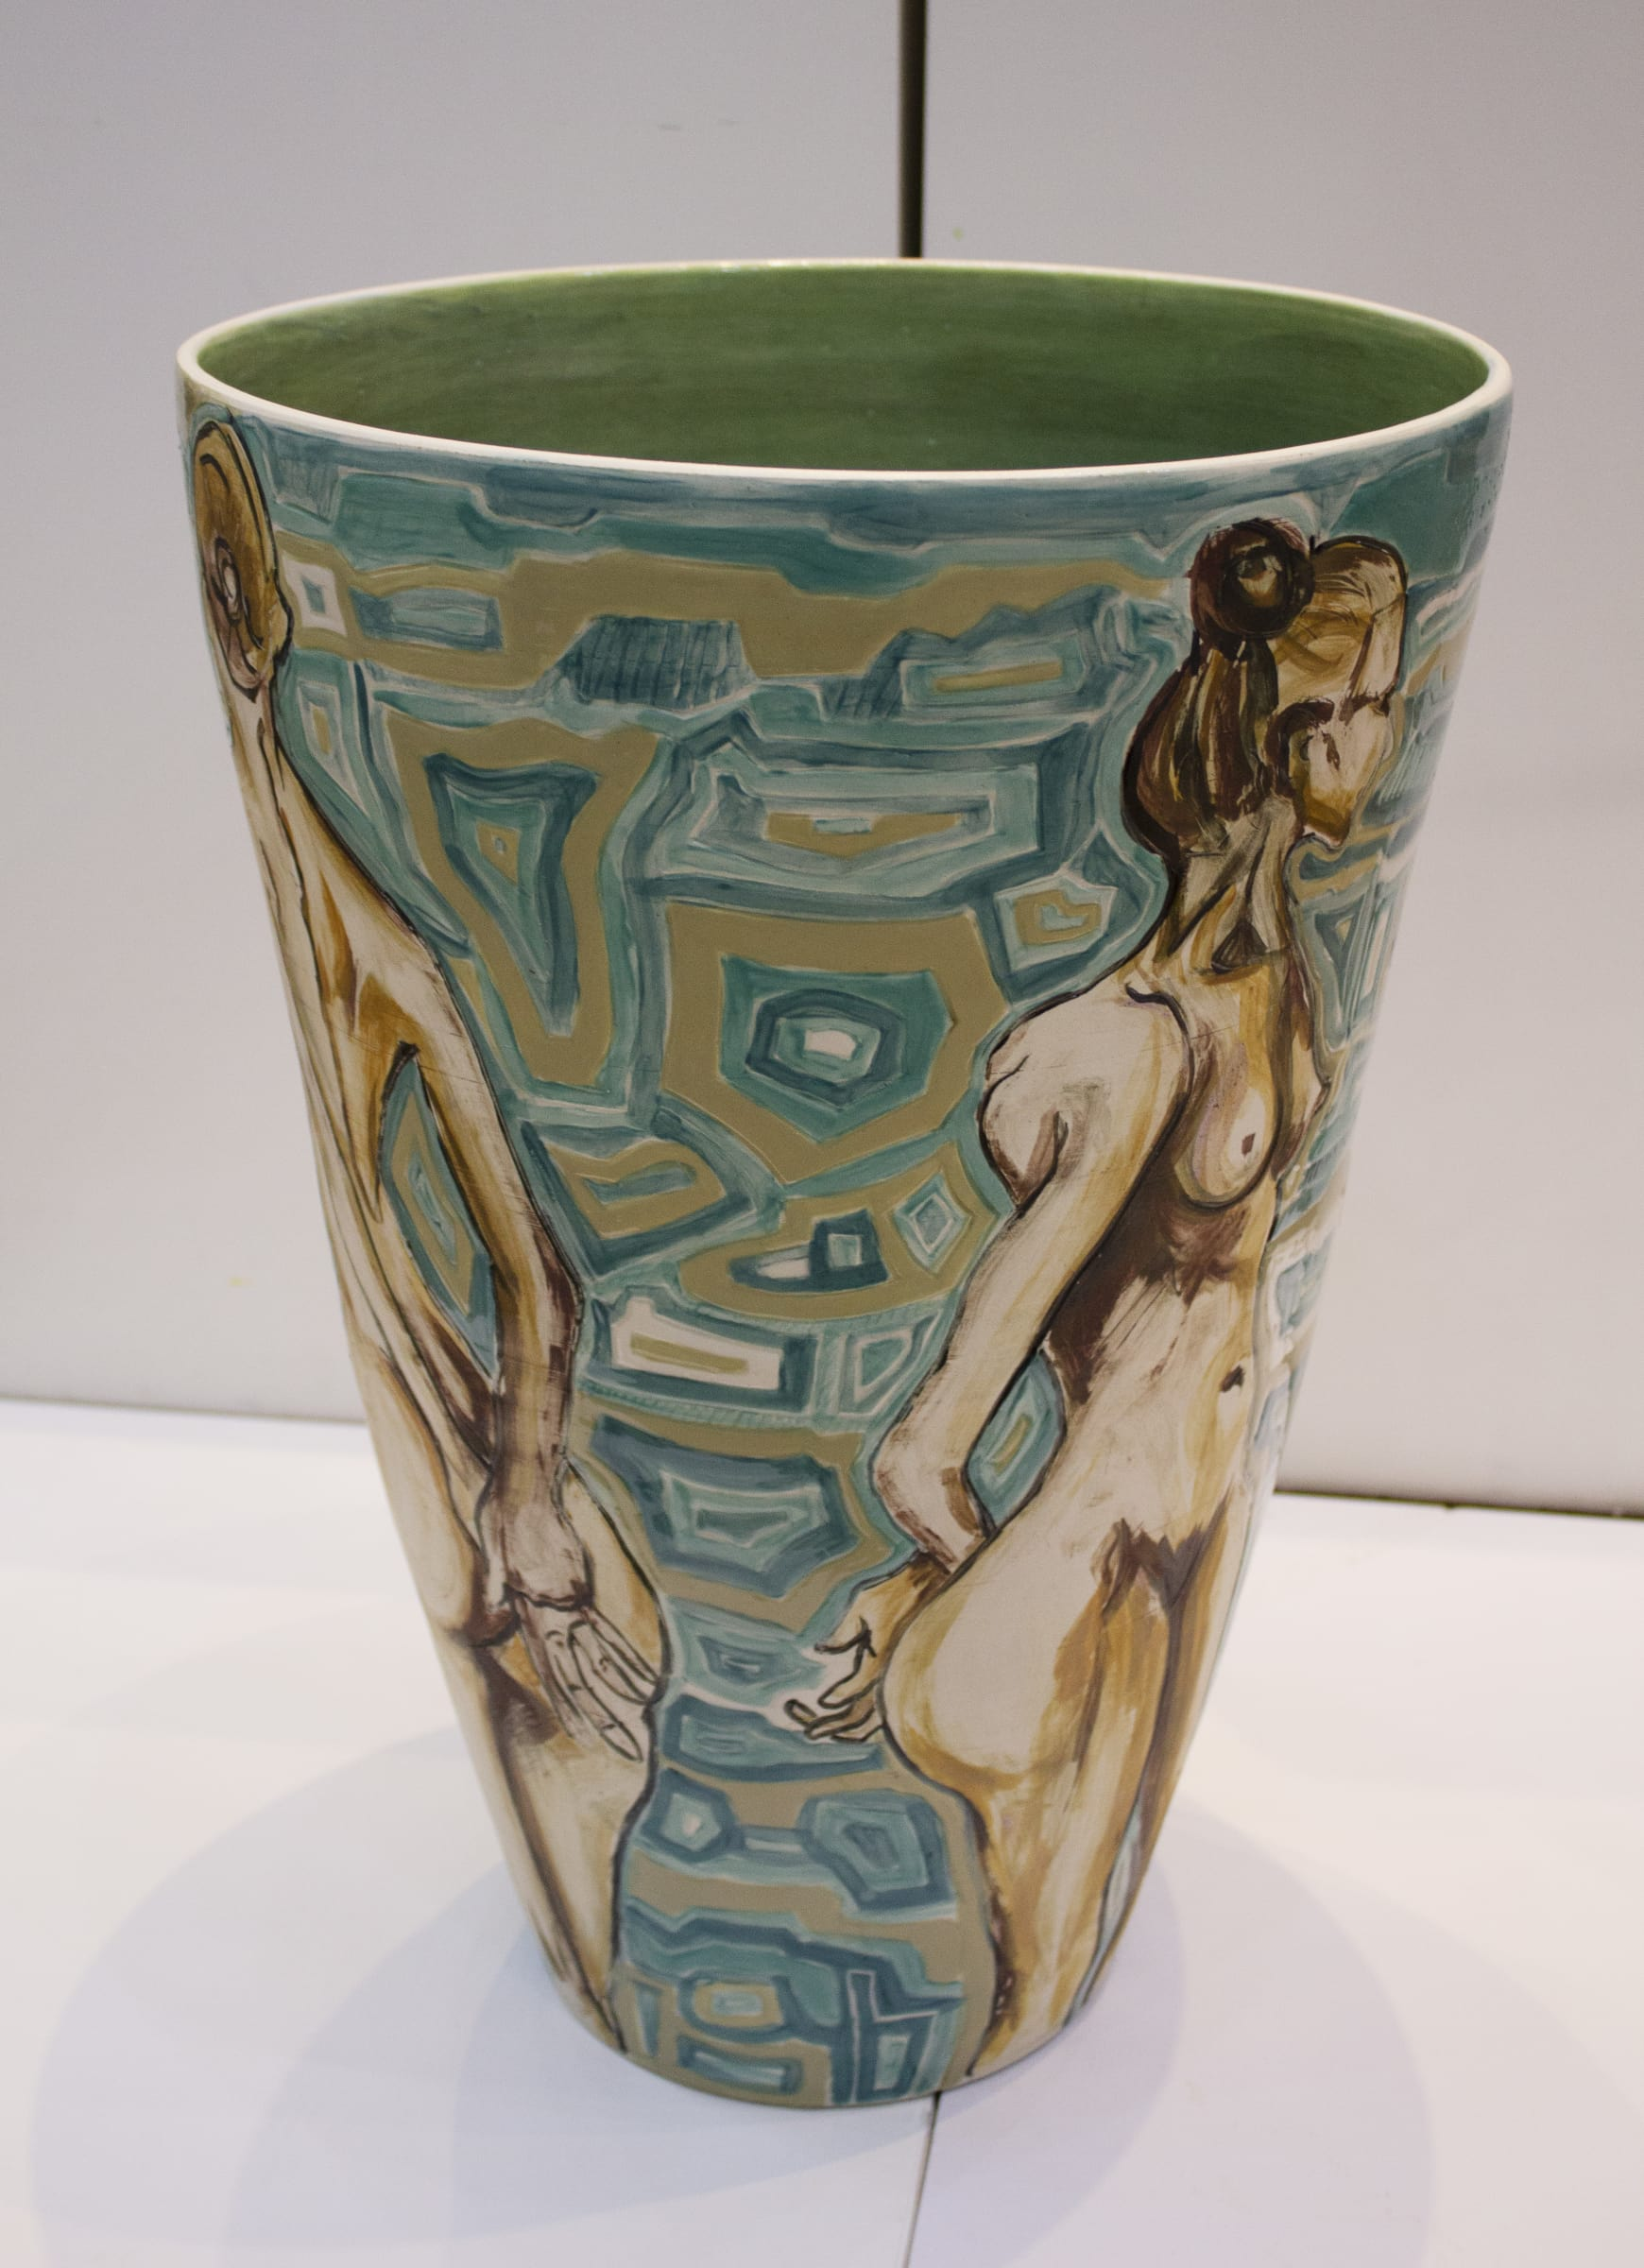 <span class=&#34;link fancybox-details-link&#34;><a href=&#34;/artworks/categories/134/2868-karin-abedian-jenny-2015/&#34;>View Detail Page</a></span><div class=&#34;artist&#34;><strong>Karin Abedian</strong></div> <div class=&#34;title&#34;><em>Jenny</em>, 2015</div> <div class=&#34;medium&#34;>Handthrown earthenware vessel with hand drawn lifedrawing in scraffito with Klimpt inspired glazed decoration in the negative spaces</div> <div class=&#34;dimensions&#34;>53.5 cm x 40 cm x 40 cm</div><div class=&#34;price&#34;>R24,000.00</div>